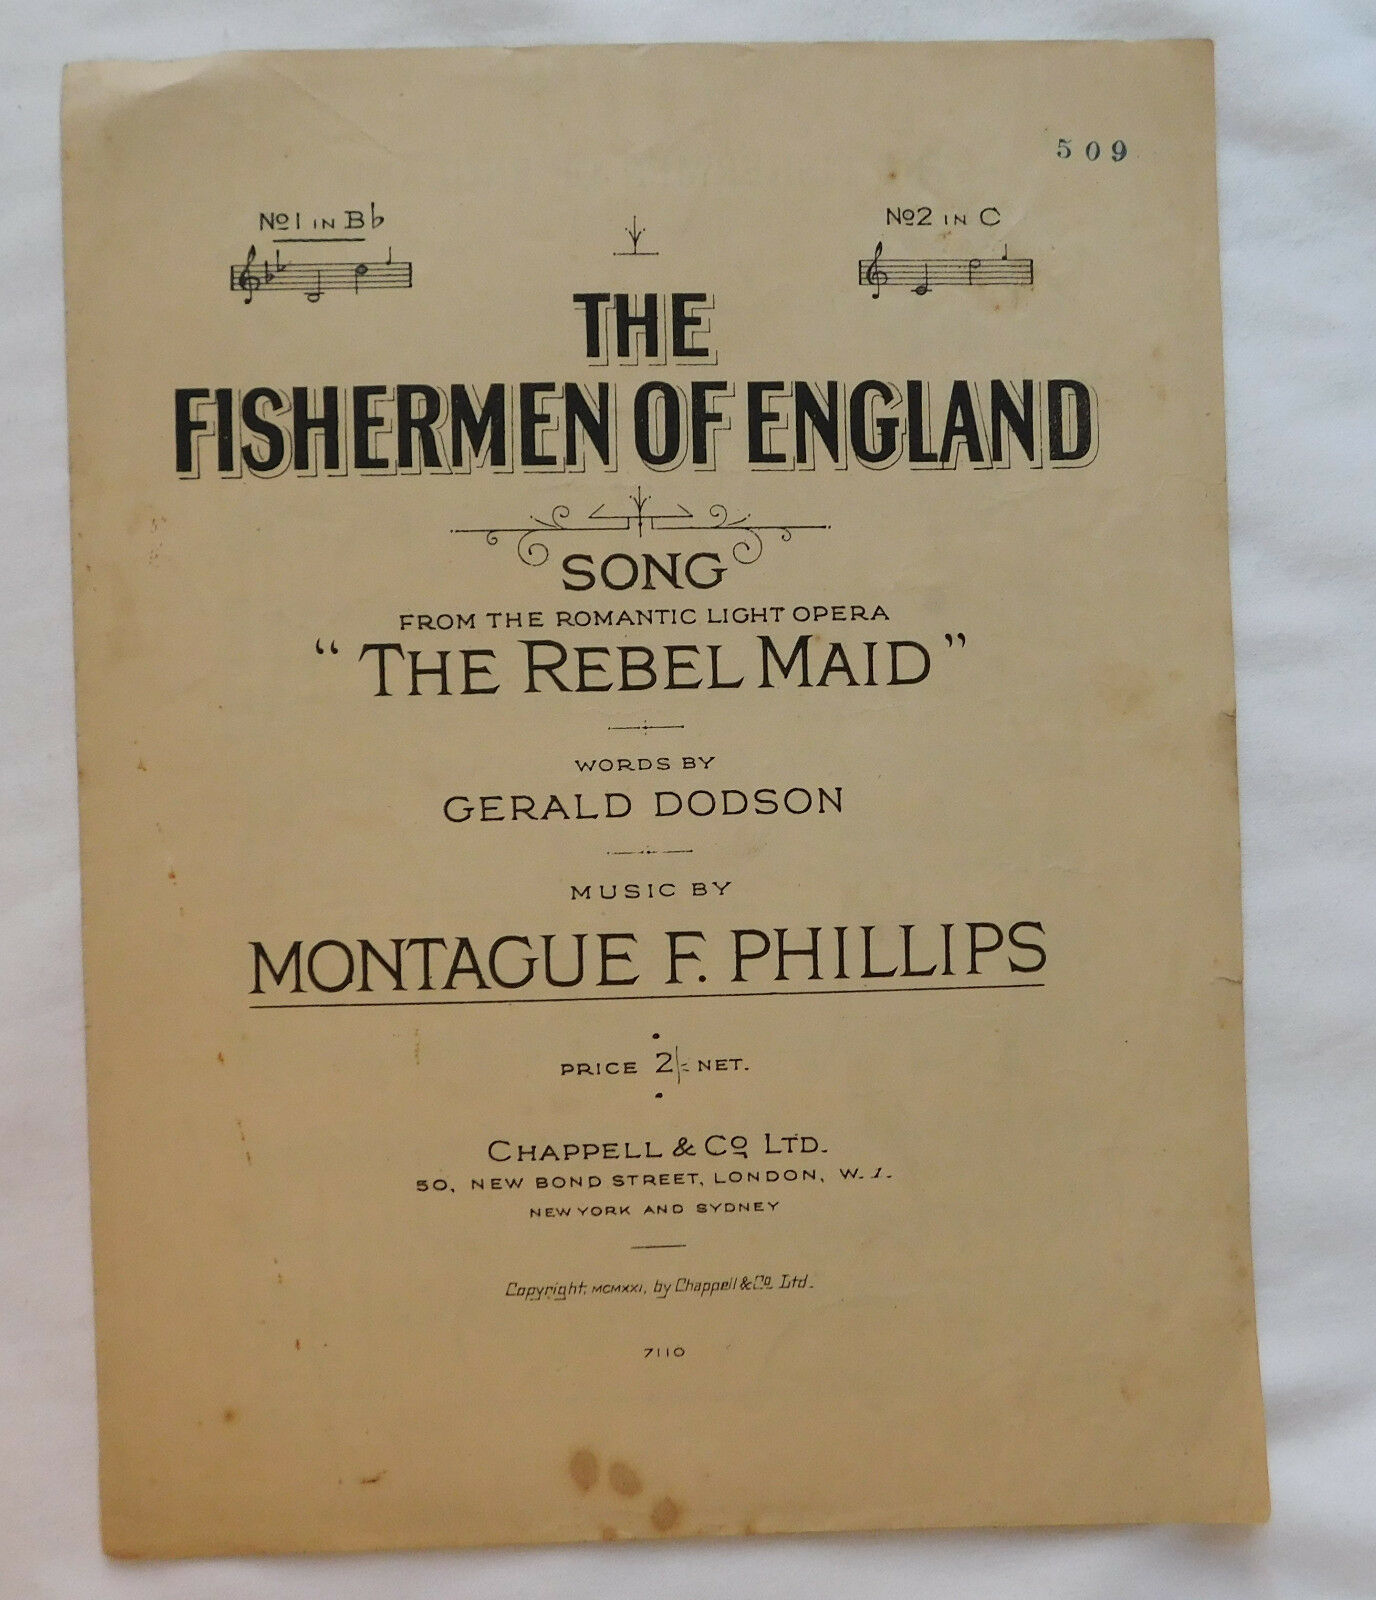 The Fishermen of England 1920s song Rebel Maid light opera vintage sheet music